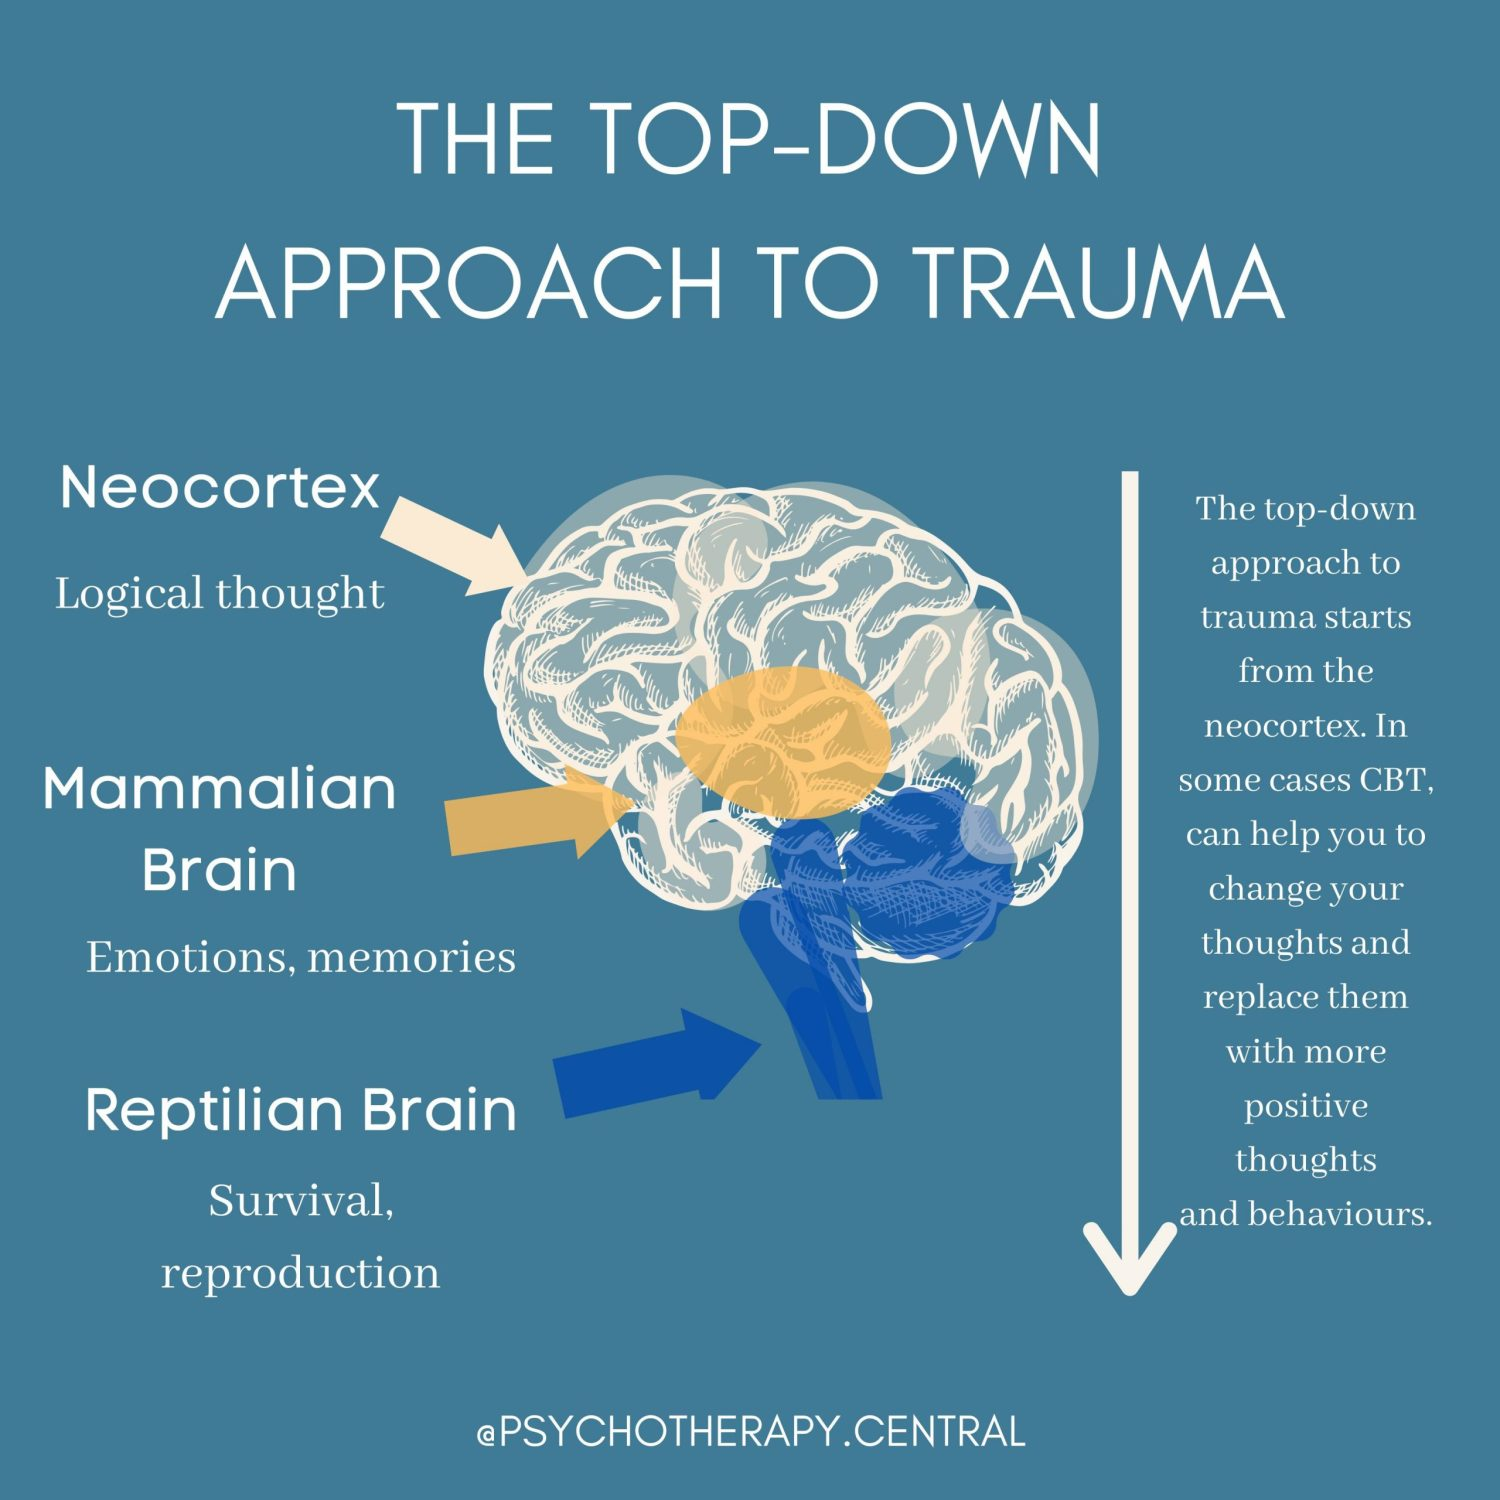 The-top-down-apprach-to-trauma